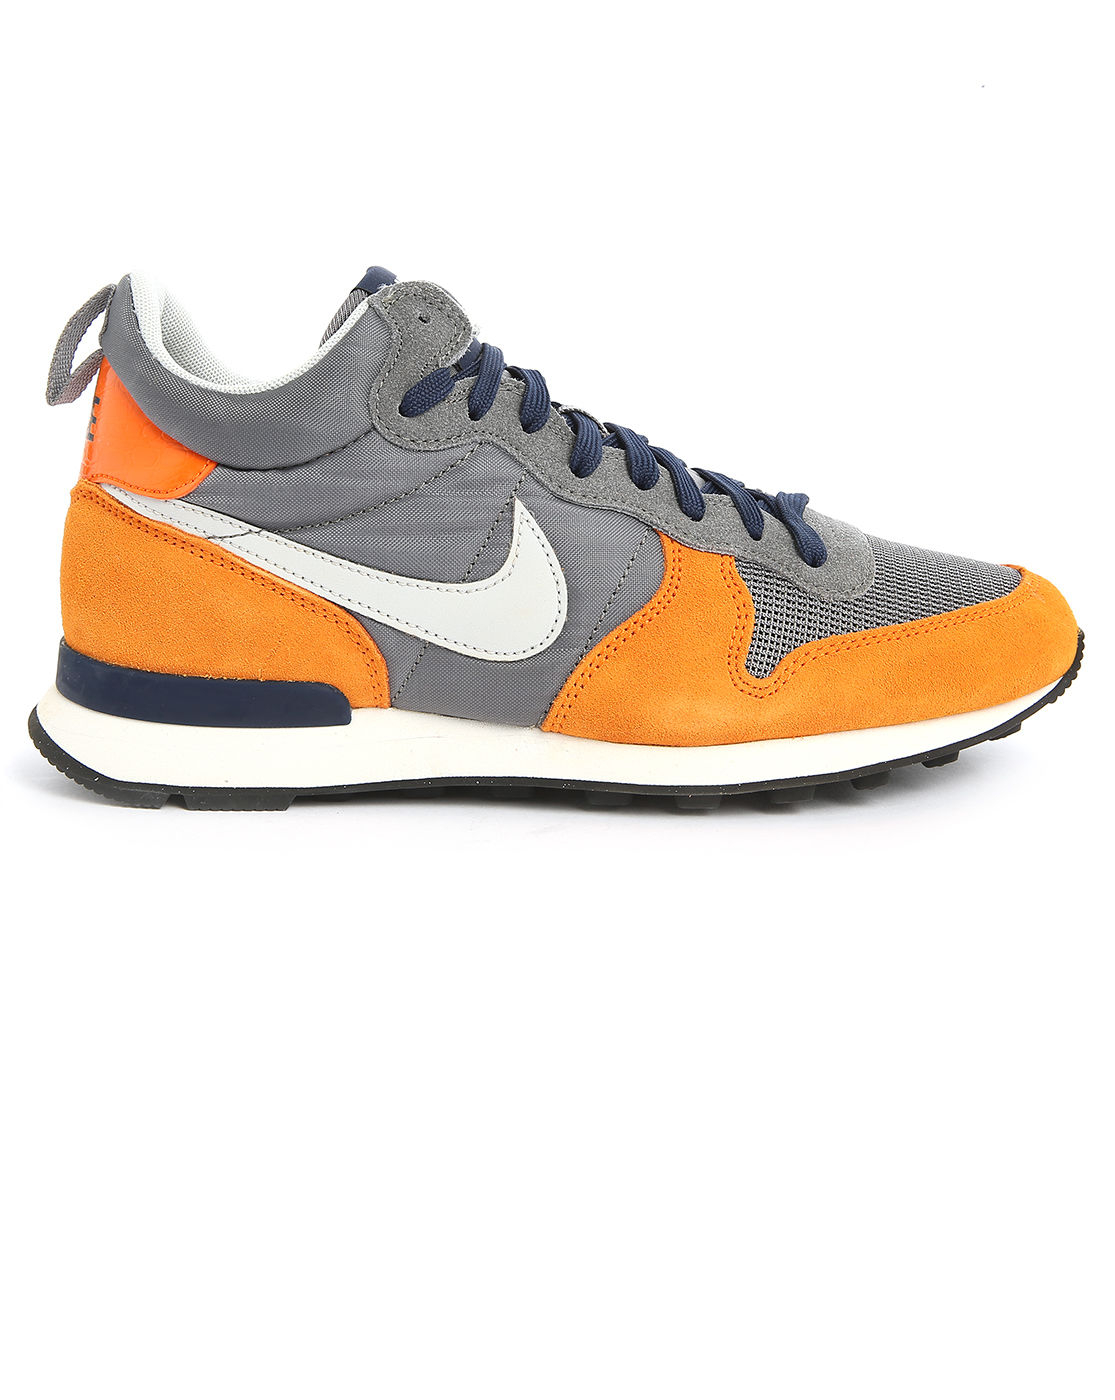 Nike Camel And Grey Suede And Mesh Mid-Top ...